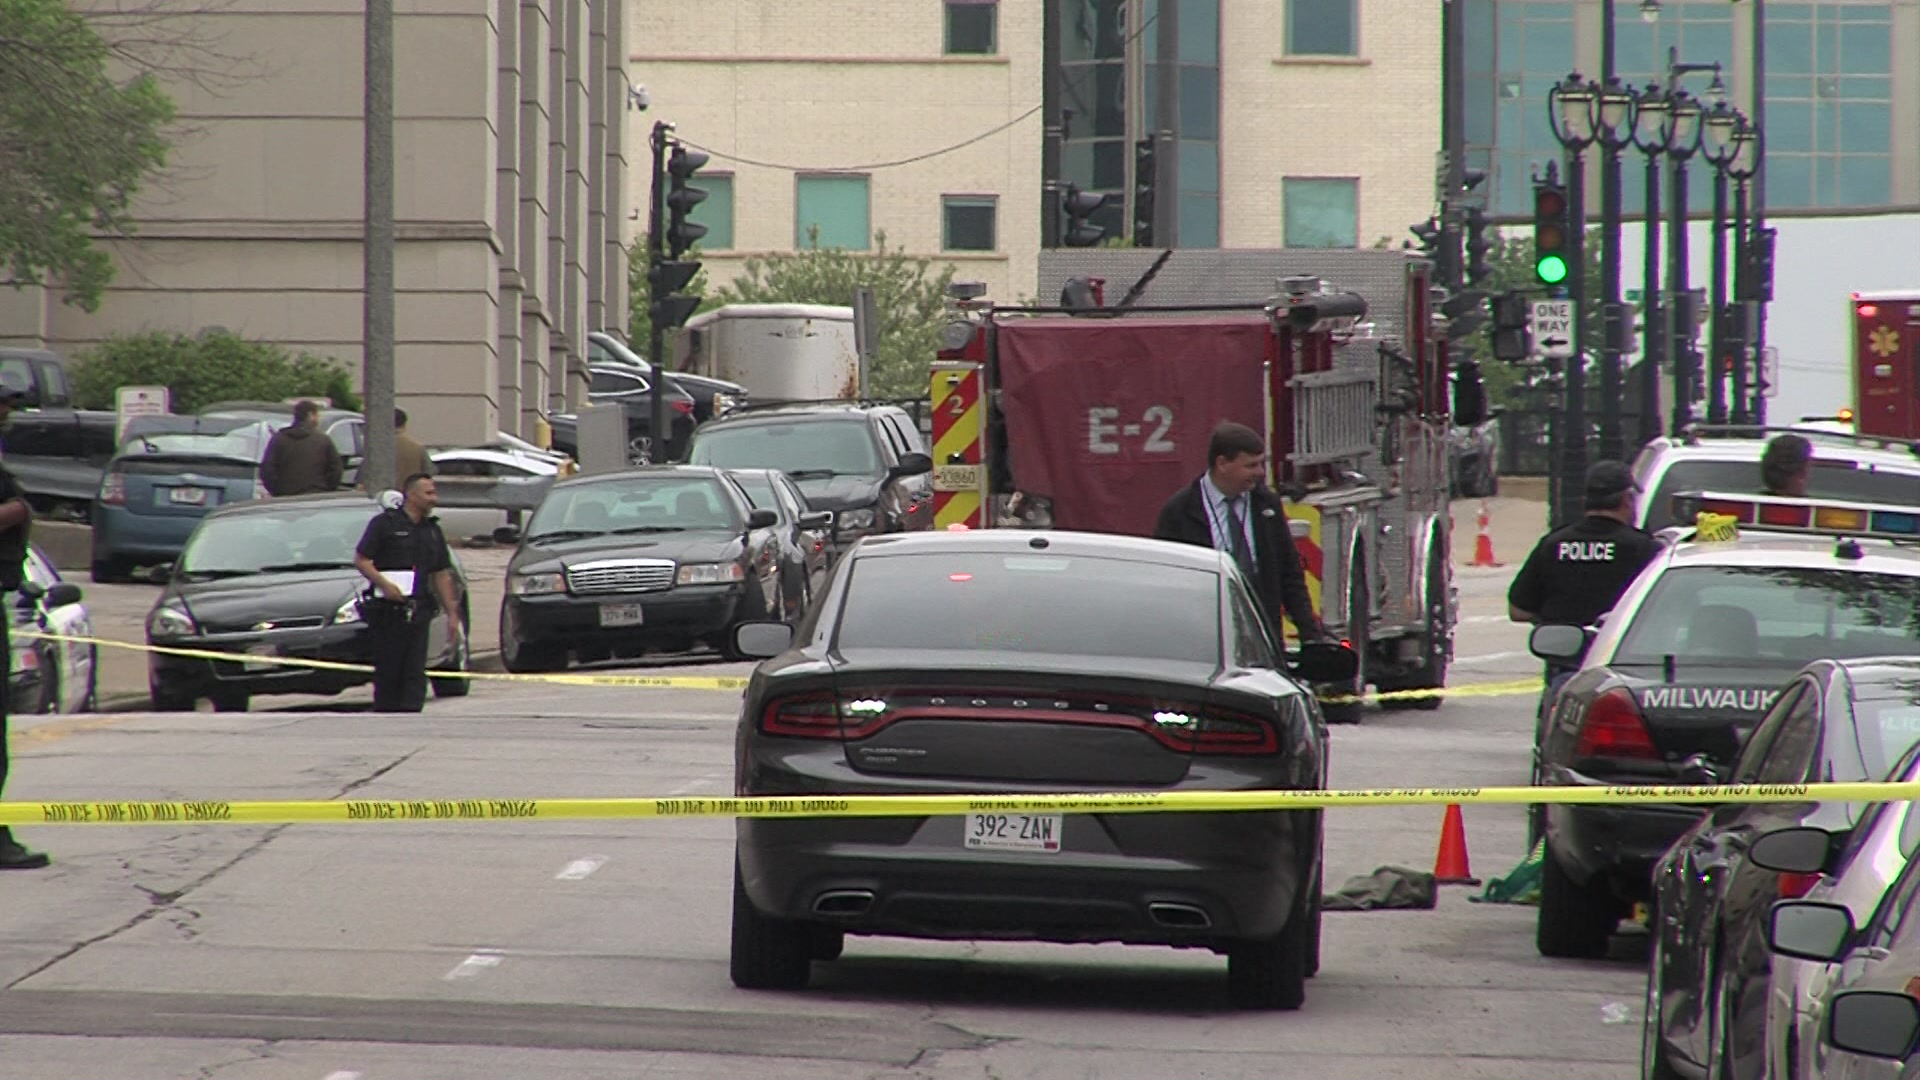 MPD: Woman who shot man in downtown Milwaukee won't face charges